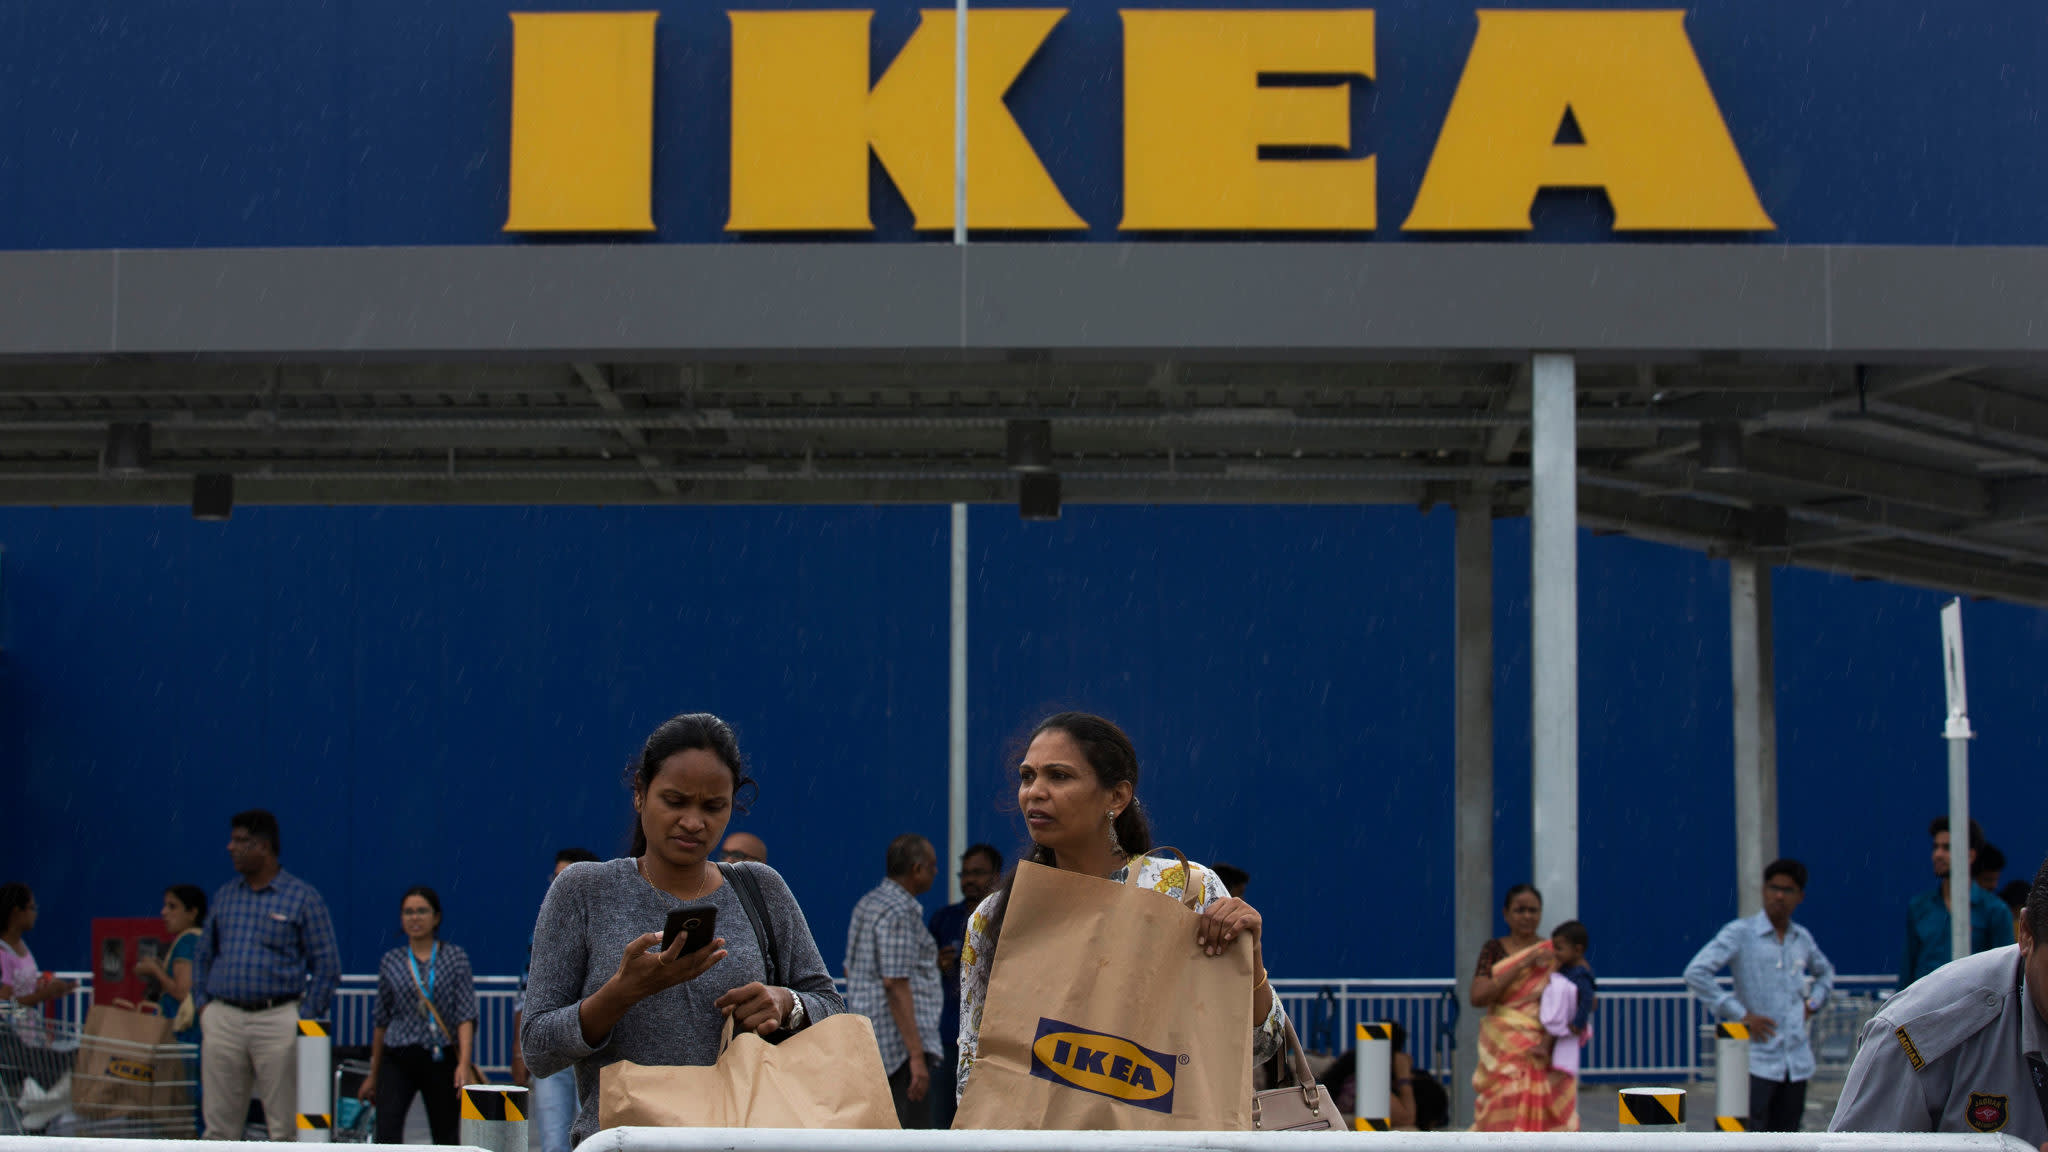 Ikea to cut thousands of jobs as it plans redesign